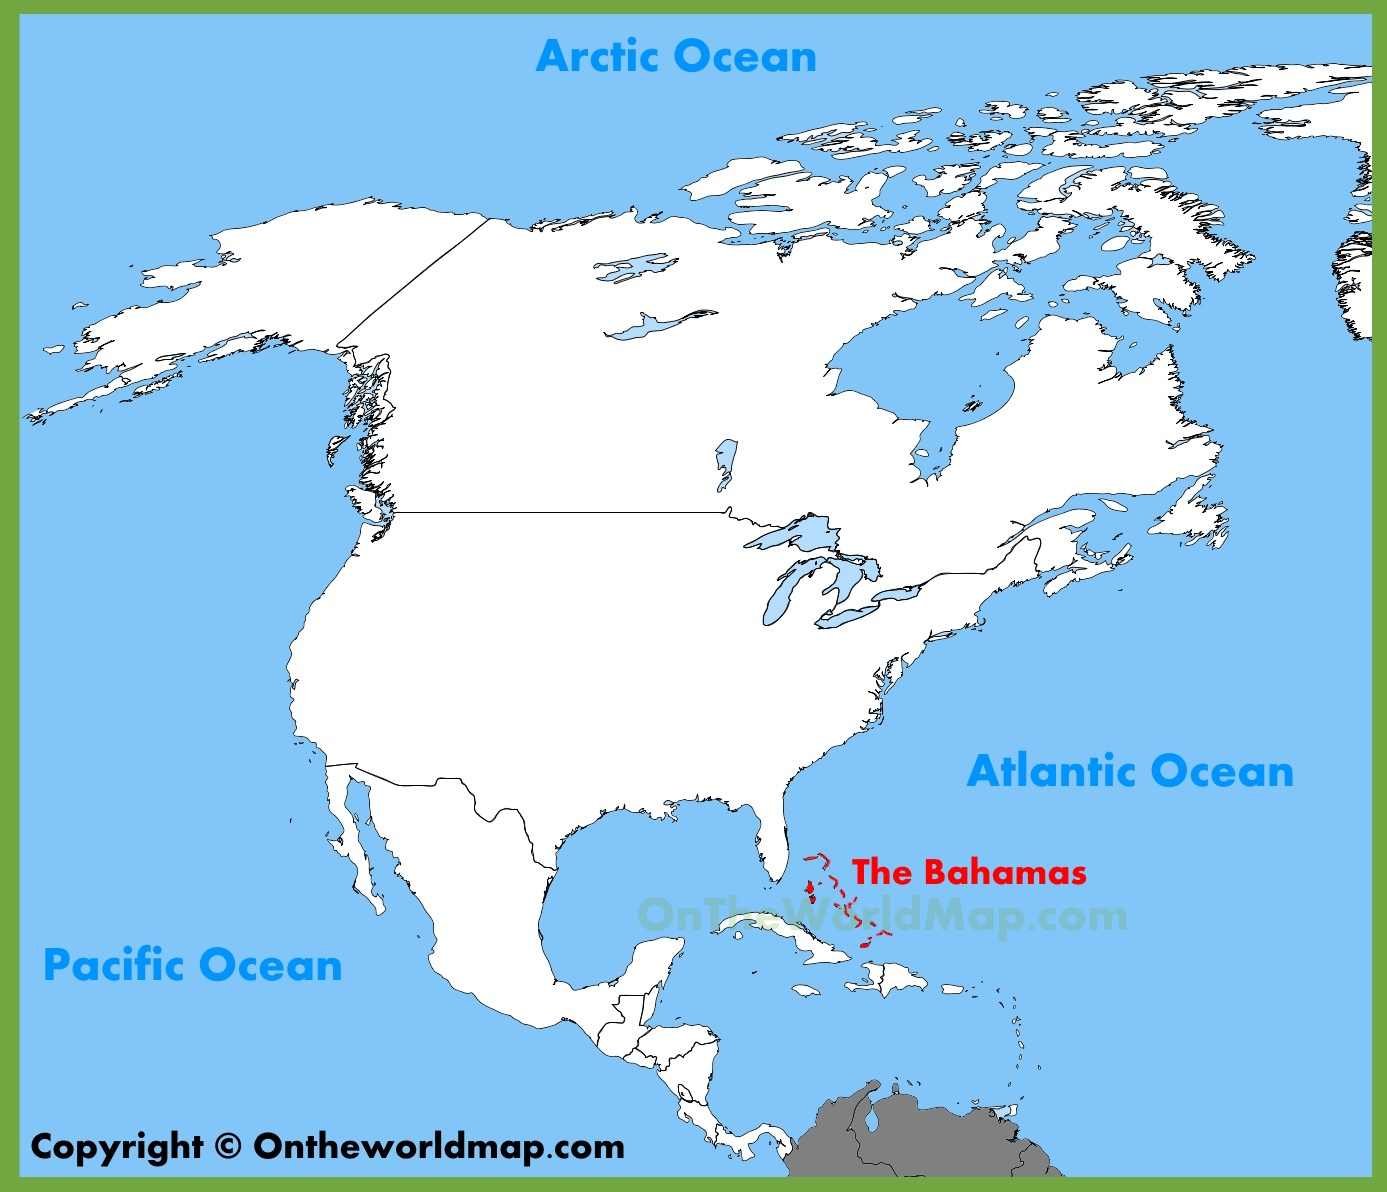 Where Is The Bahamas On The Map The Bahamas location on the North America map